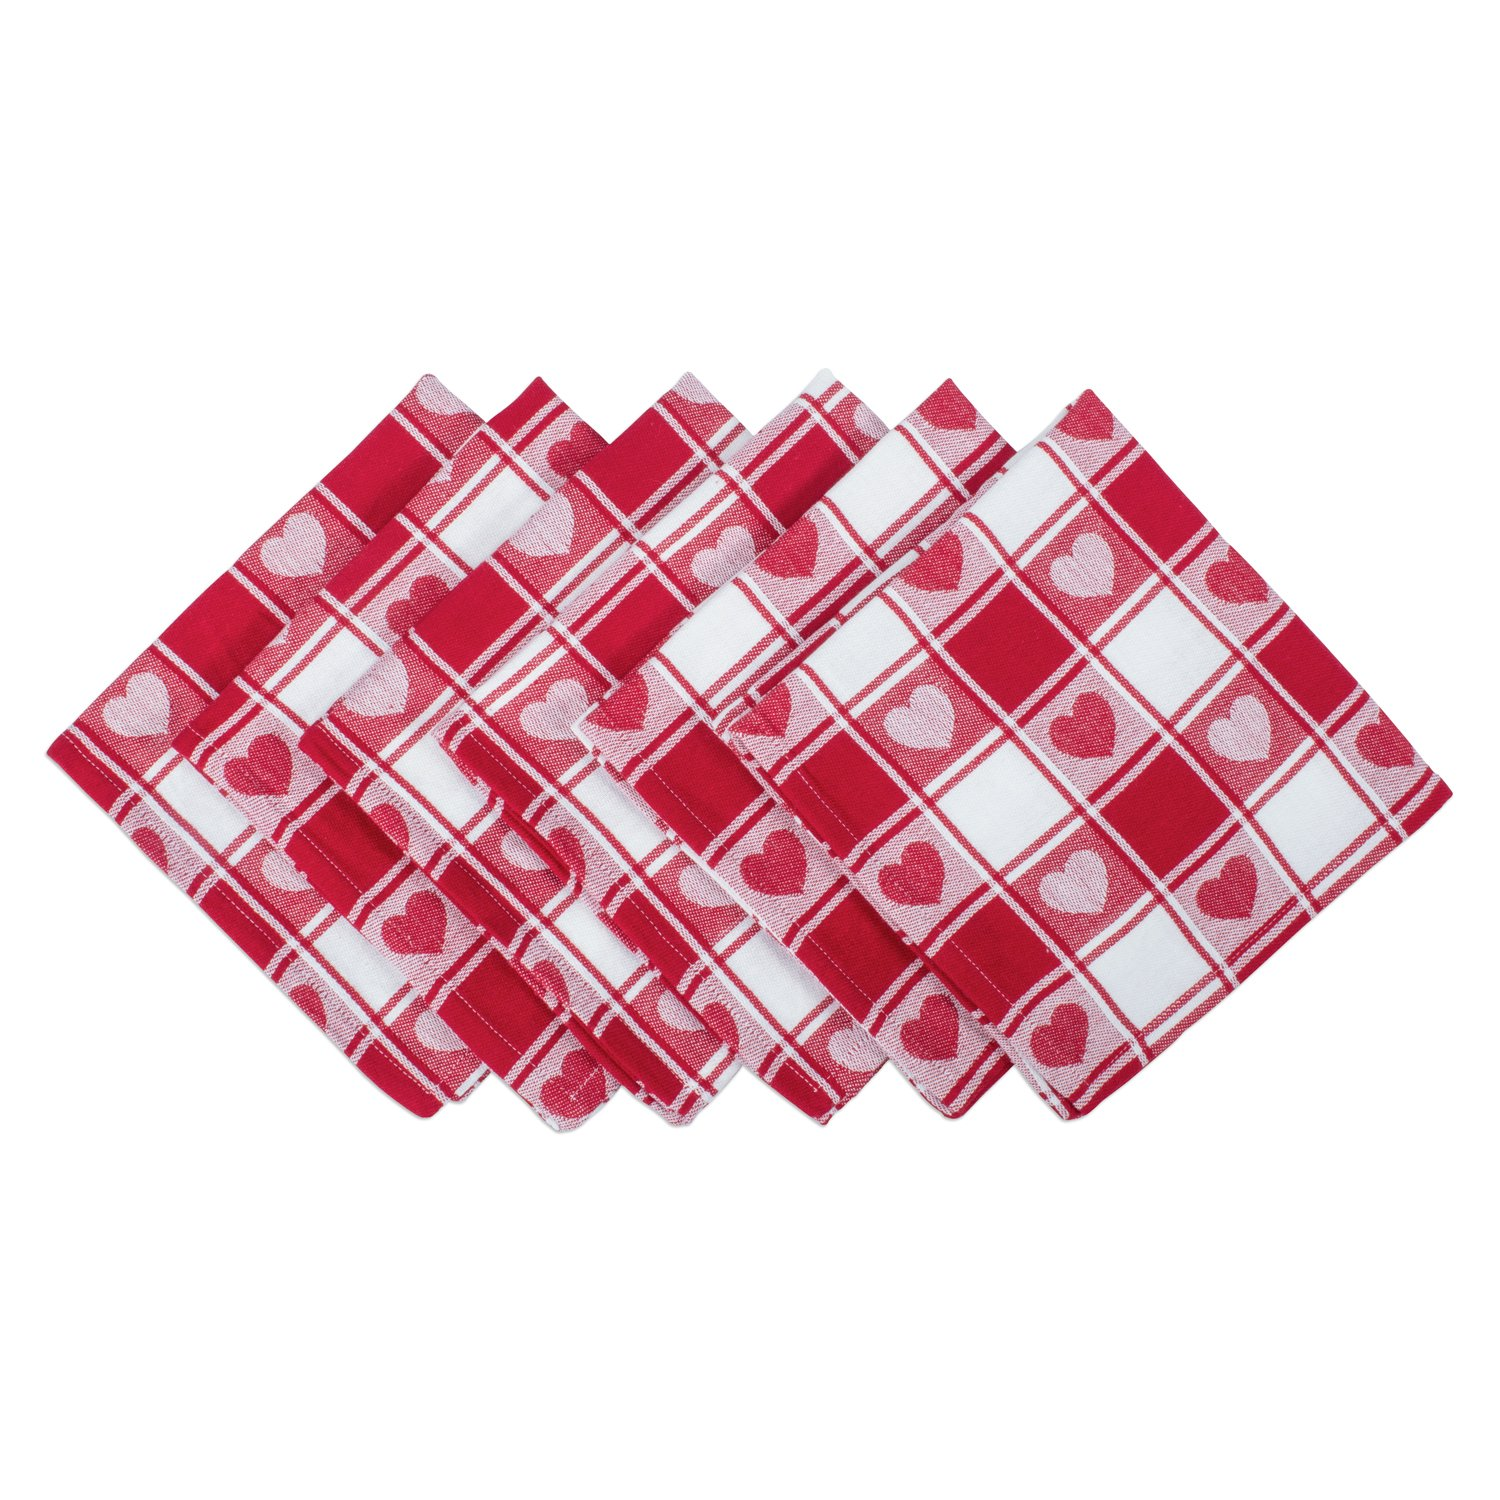 DII Valentine's Day Red & White Checkered Hearts 100% Cotton Napkins (Set of 6, Oversized 20 x 20) Machine Washable - Beautiful Gift for Valentine's Day, Mother's Day, Housewarming